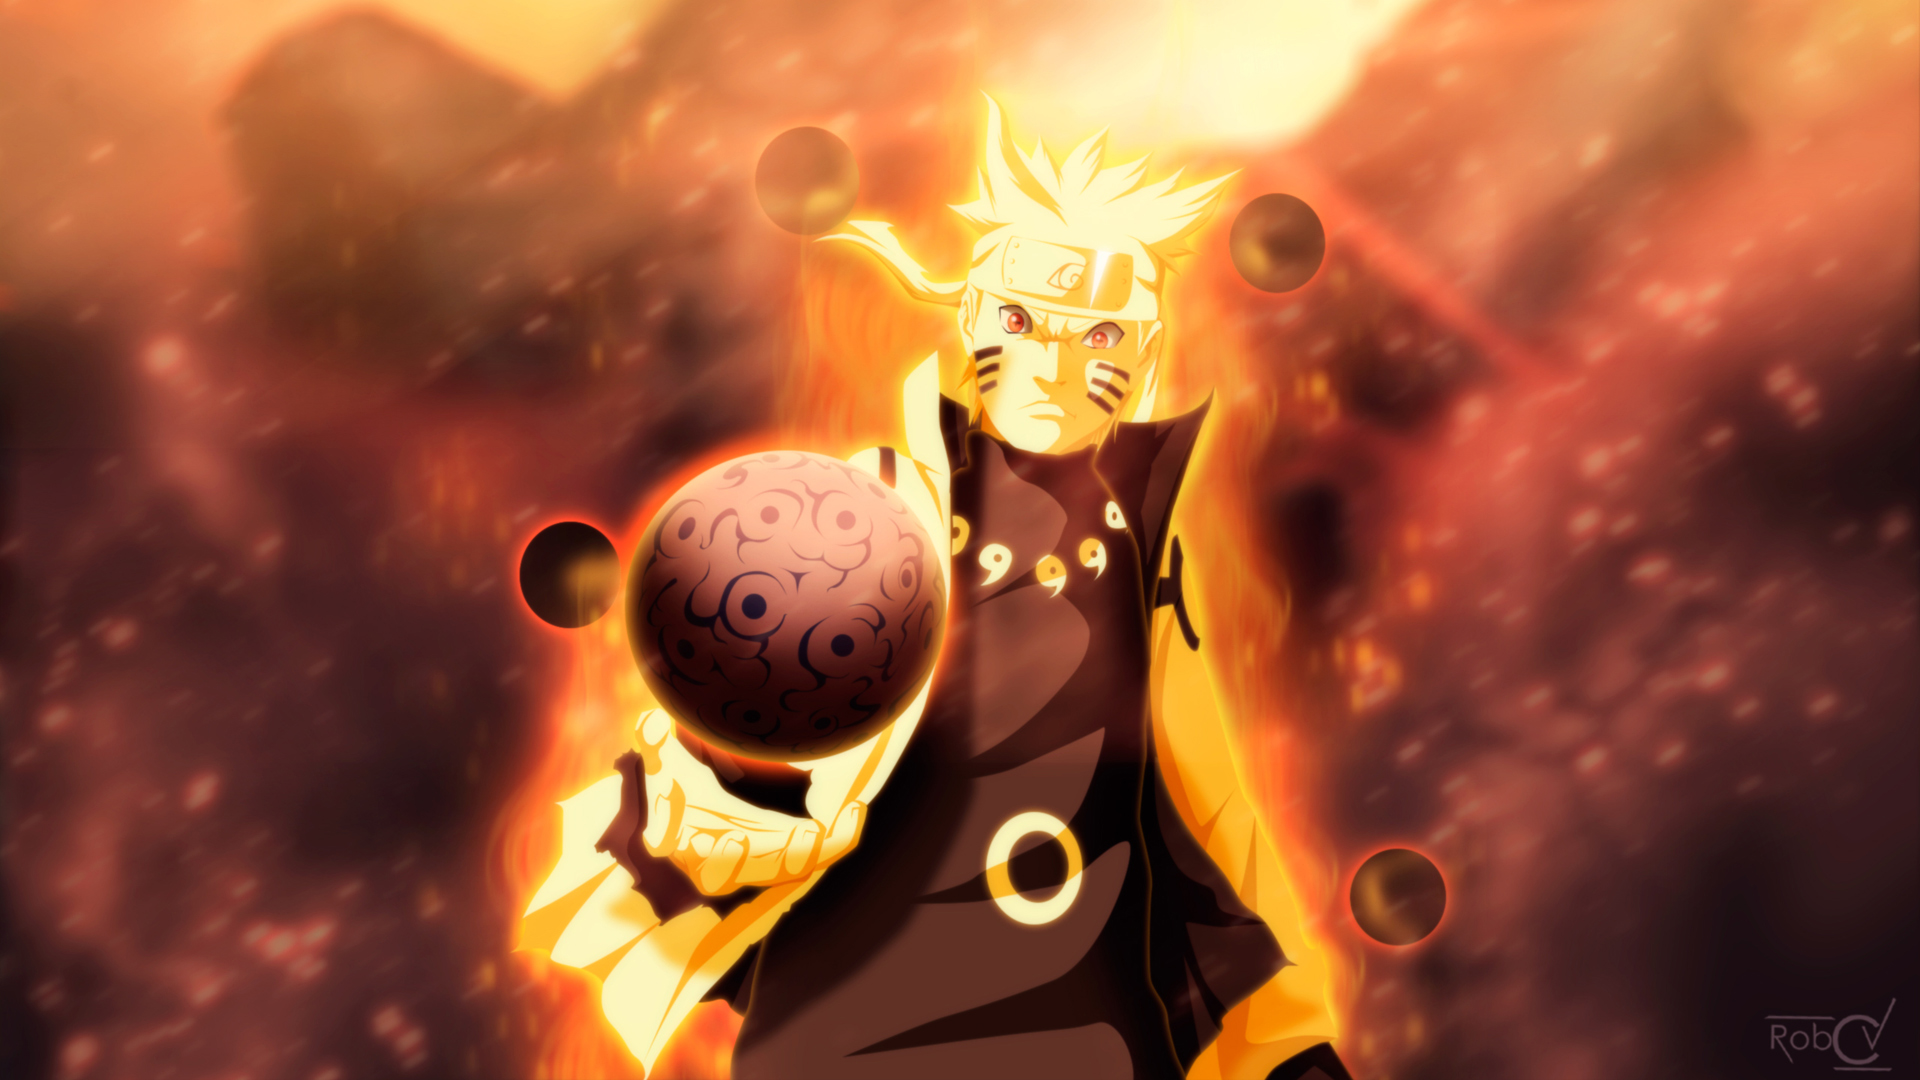 uzumaki naruto 9 tailed beast mode anime. hd 1920x1080 1080p wallpaper